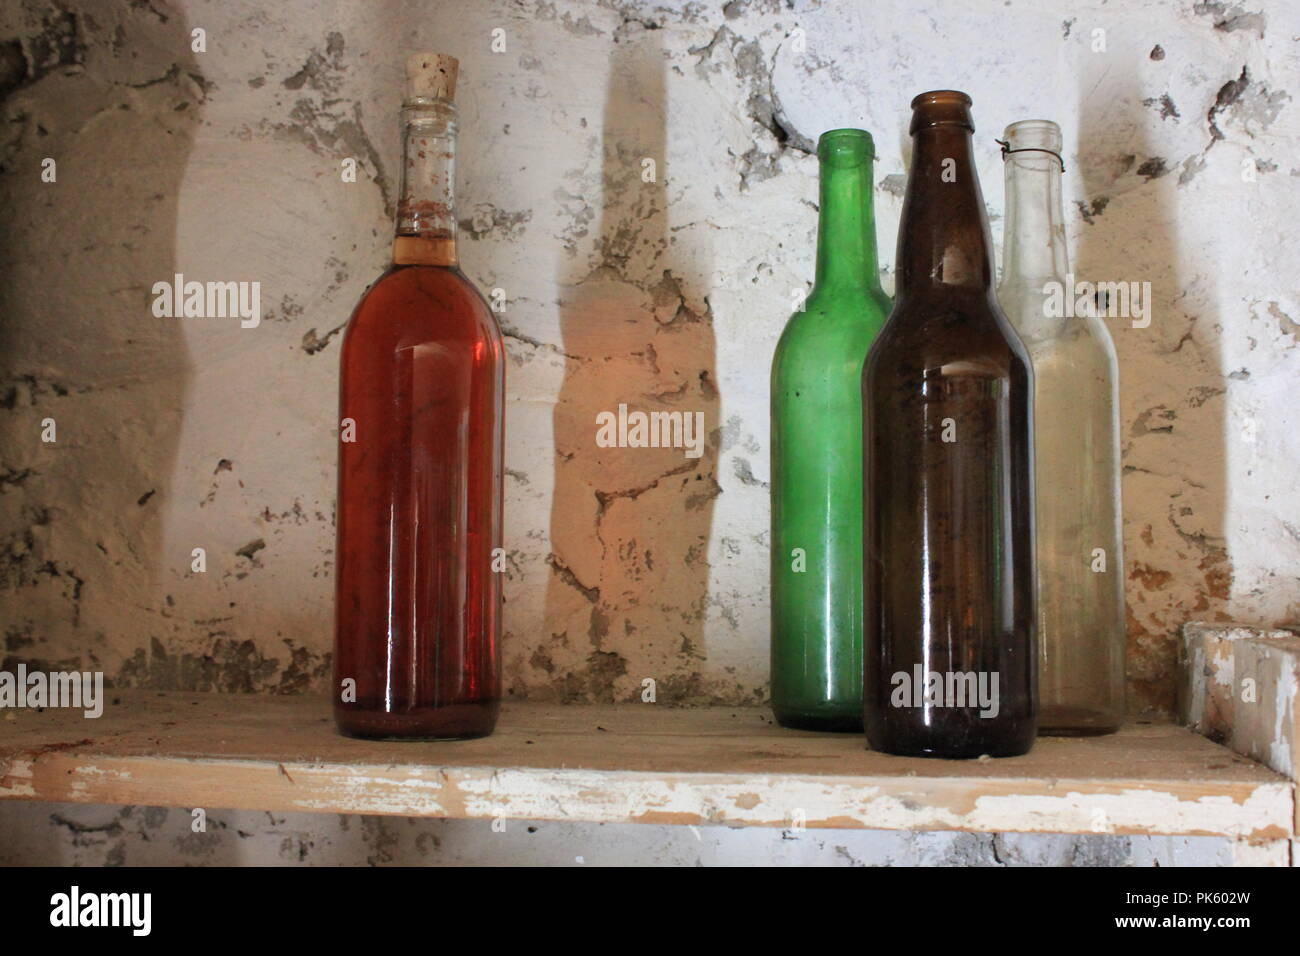 Glass bottles on a shelf in a canning cellar at the Volkening Heritage Farm in Schaumburg, Illinois on a late summer day. - Stock Image